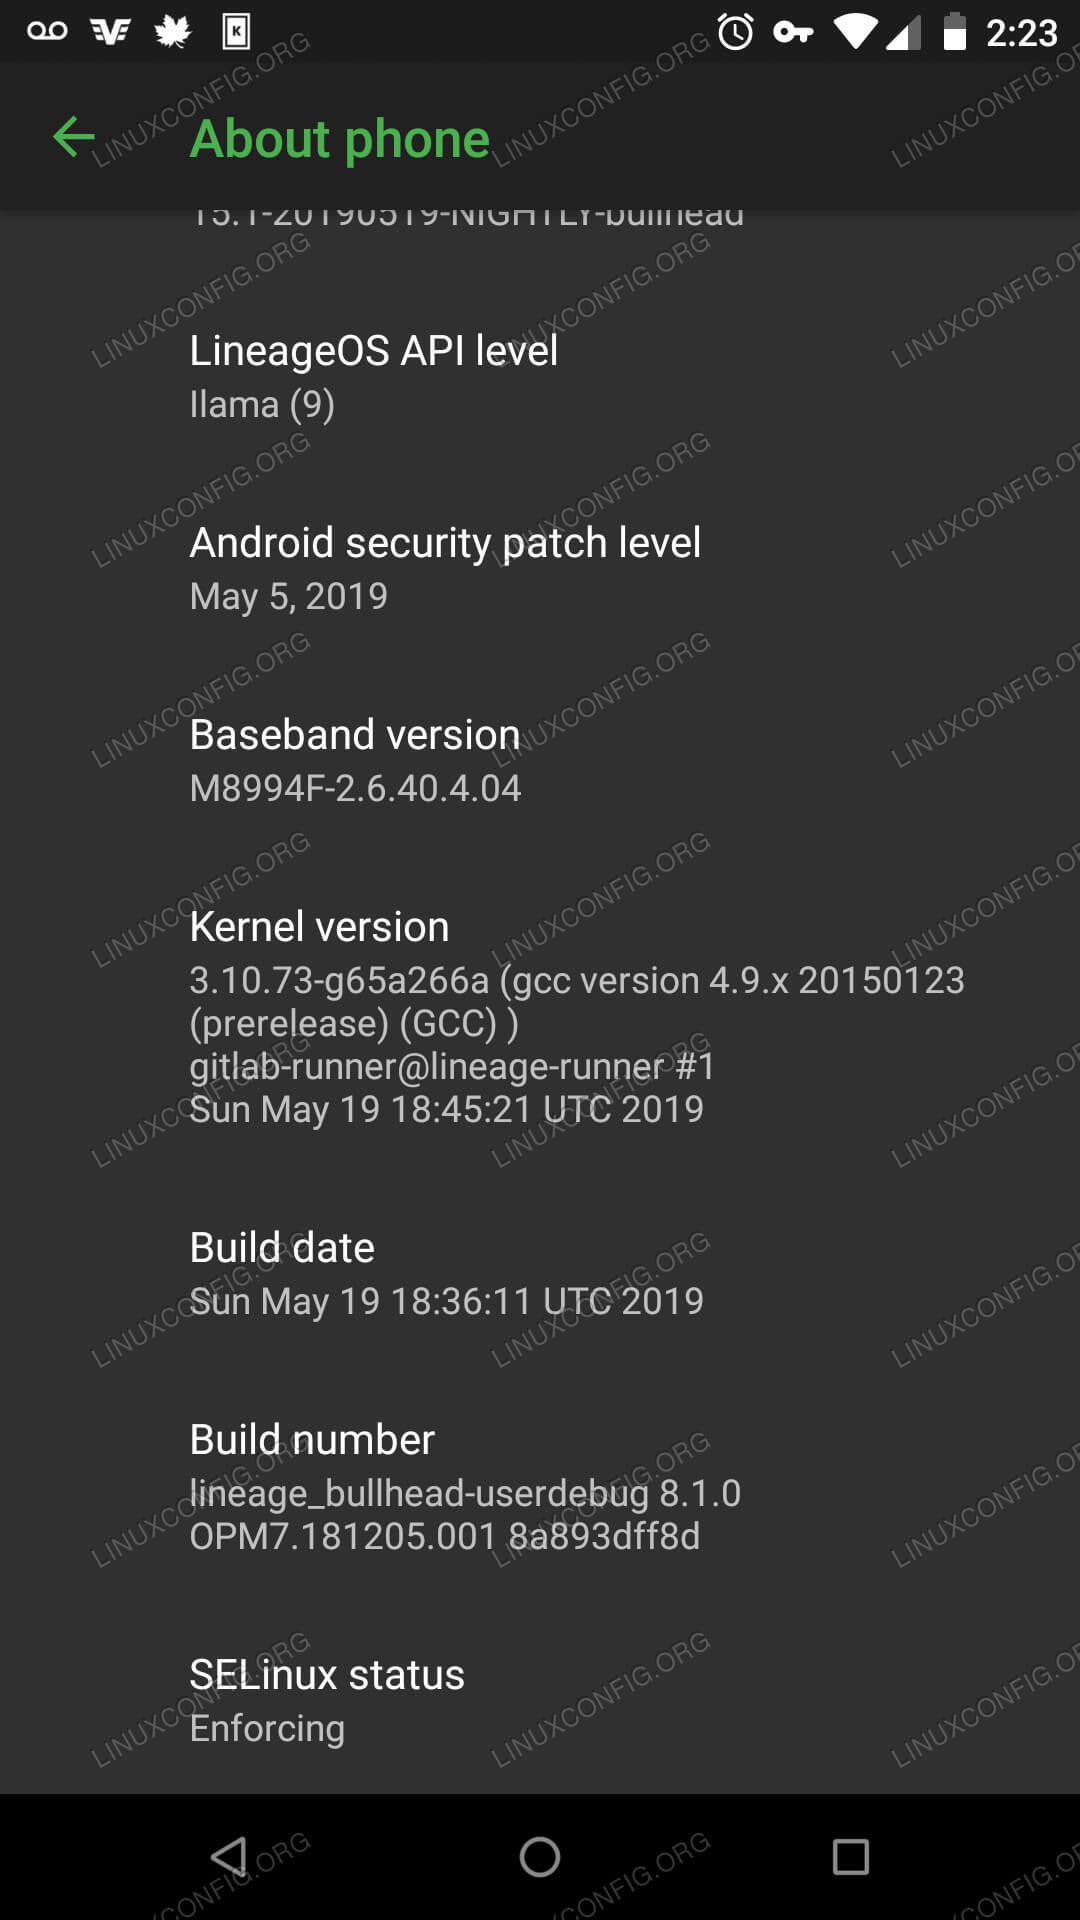 About Phone on Android